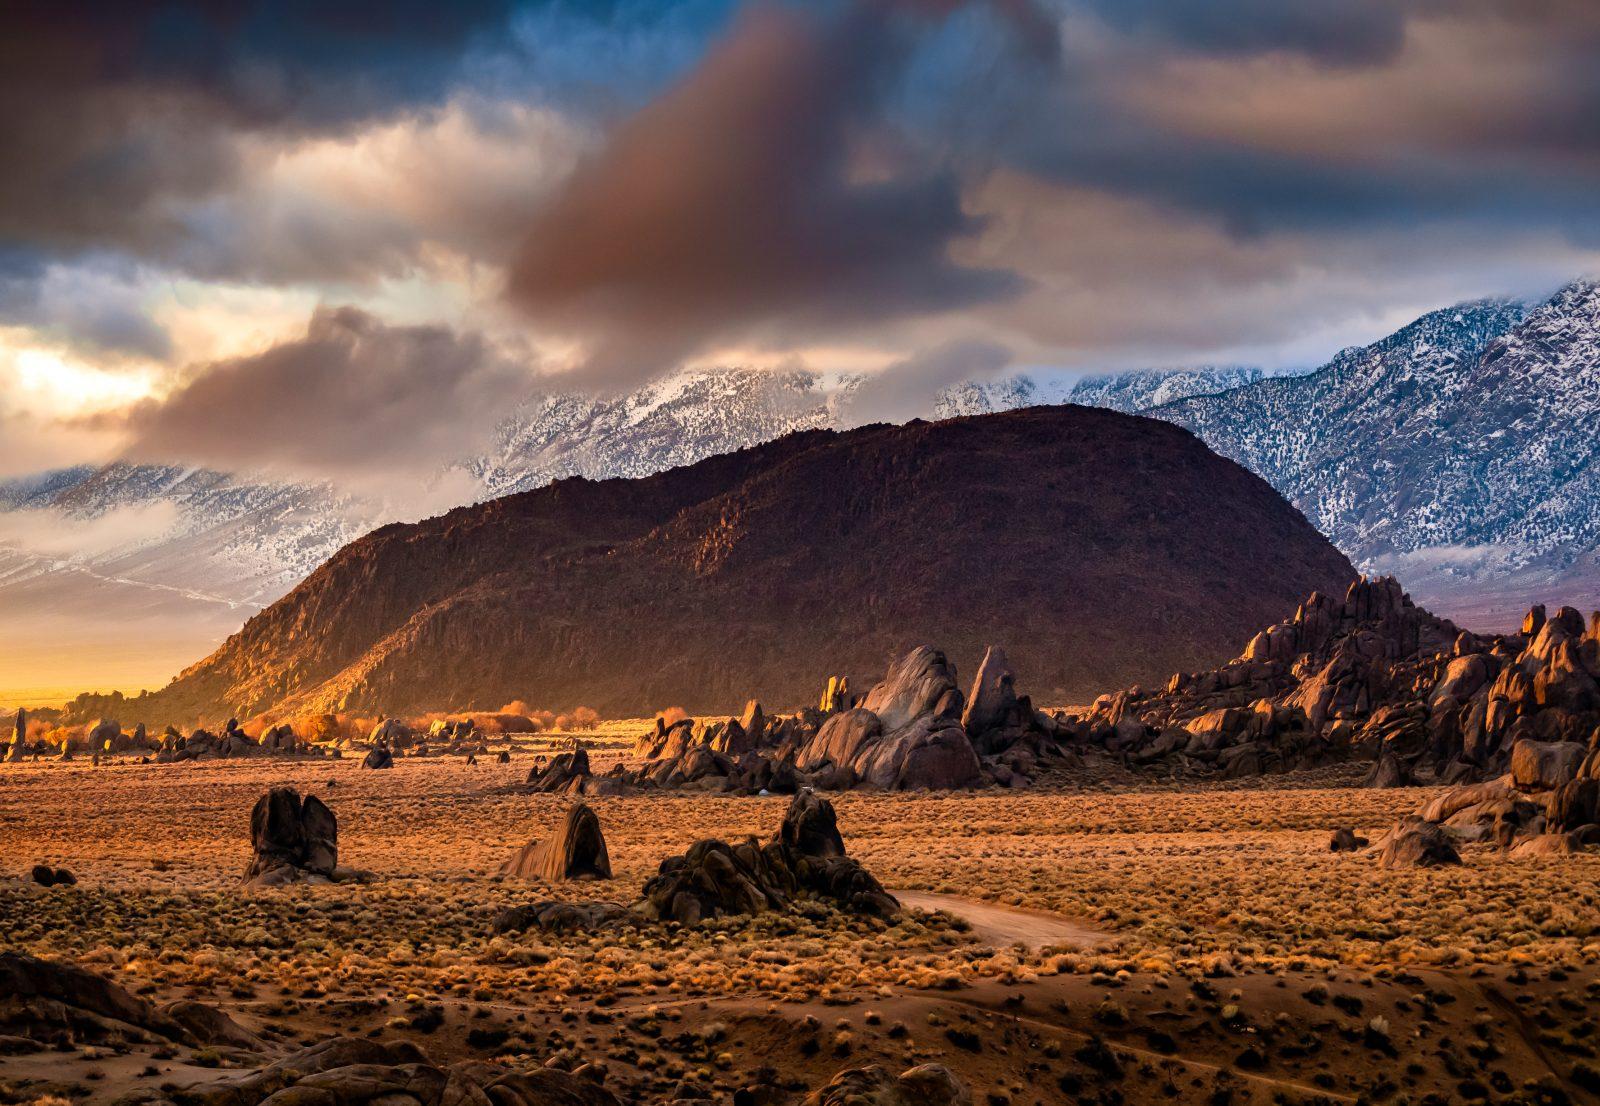 A rare stormy day in the Alabama Hills